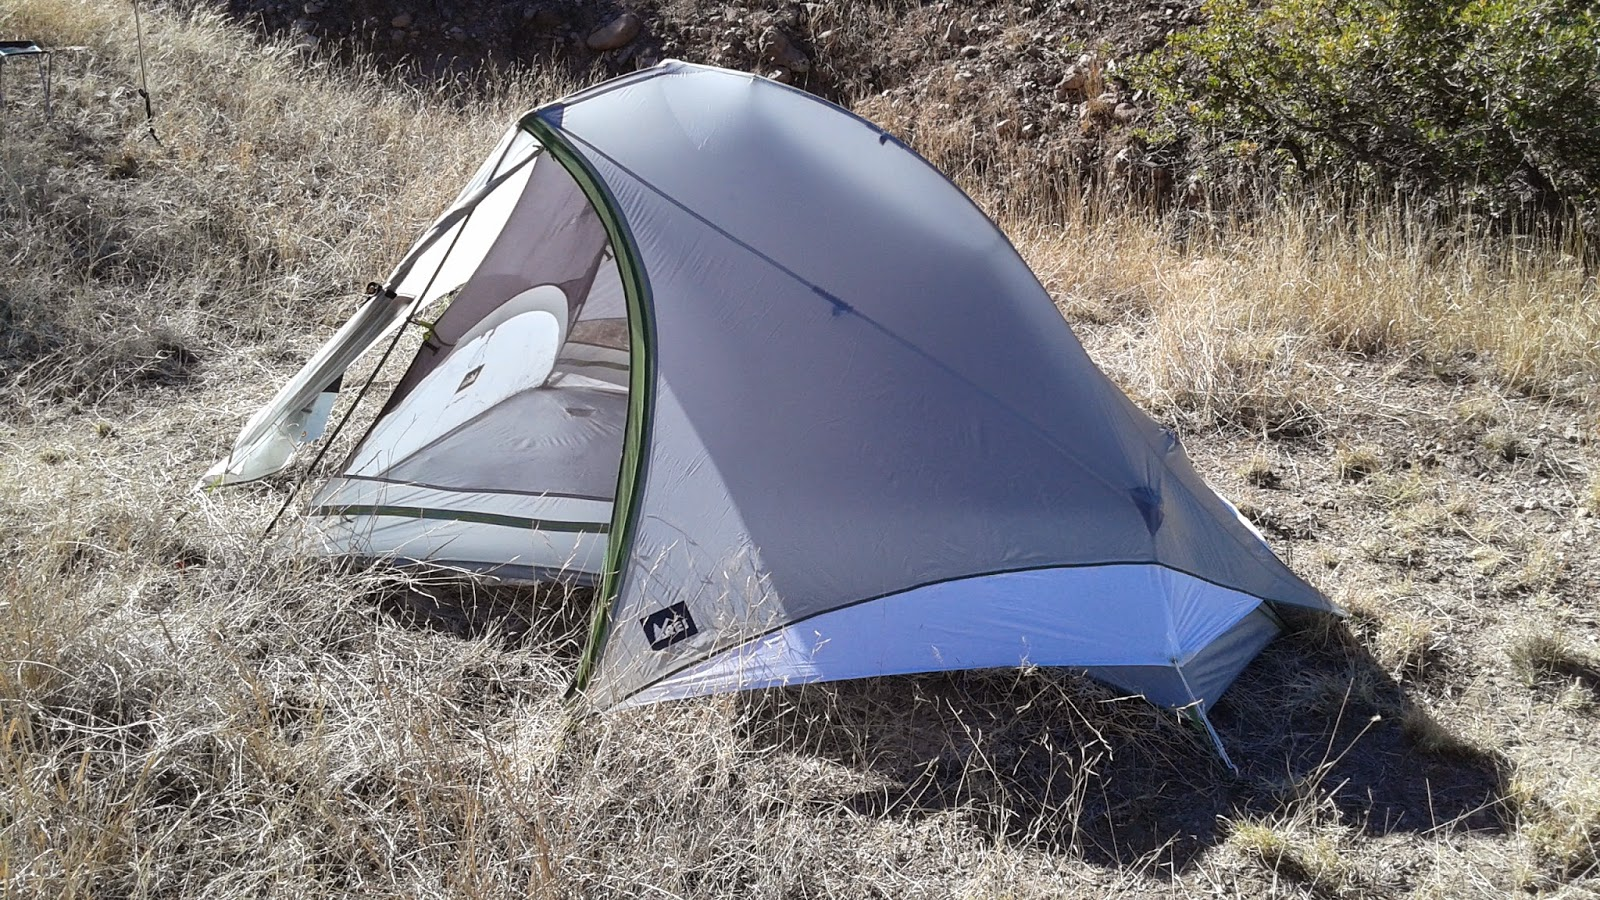 Modification to the REI Dash 2 w/ doors open. Home away from home. & Packman - Raised by Raccoons: REI DASH 2 TENT REVIEW u0026 MODIFICATION